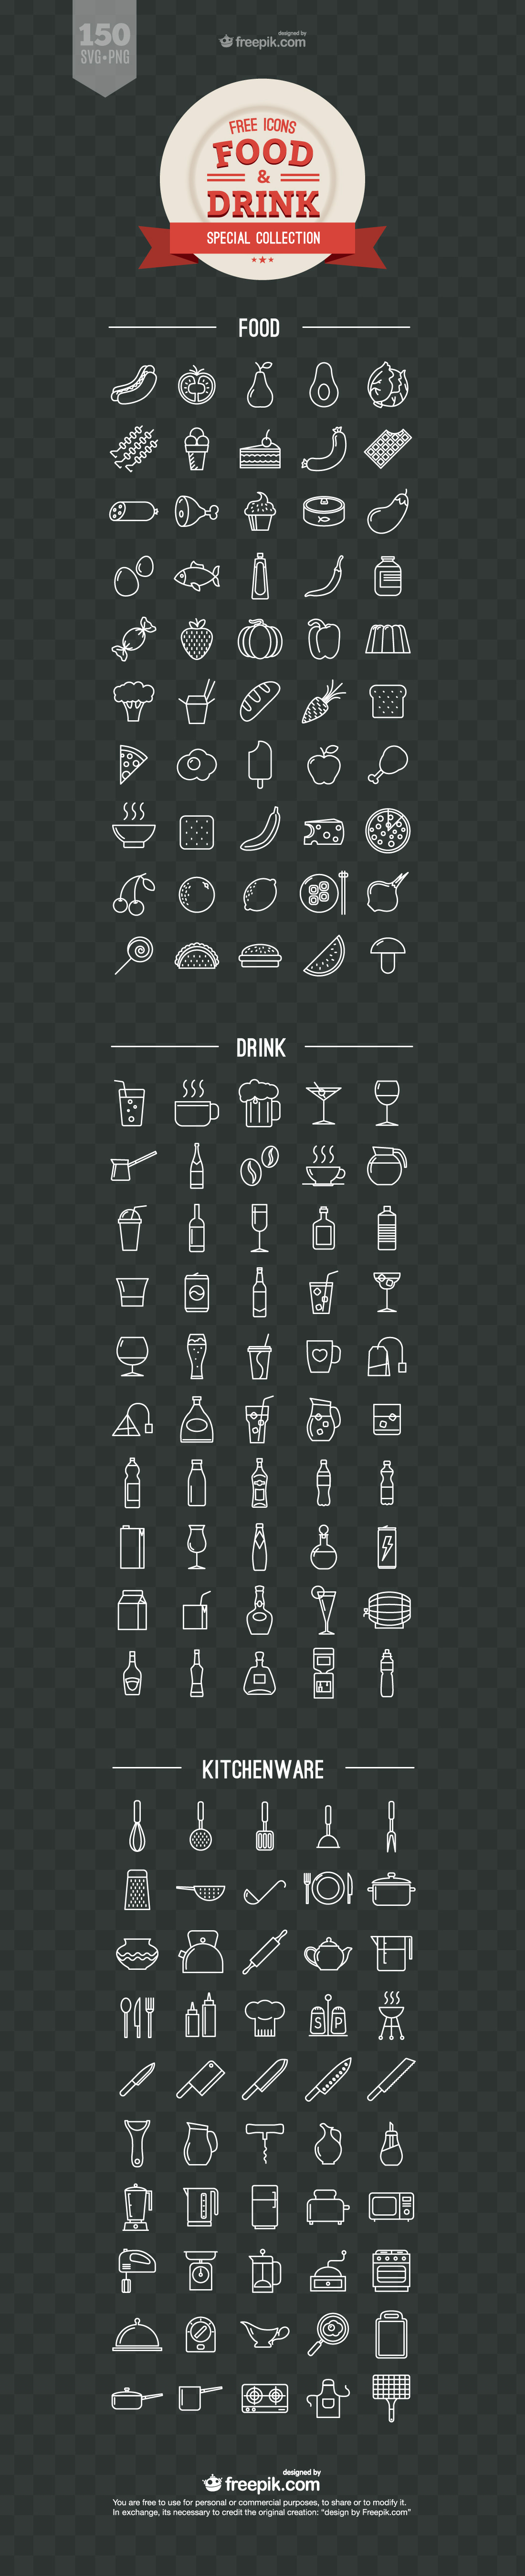 Food and Drink Icons Vector Free Download